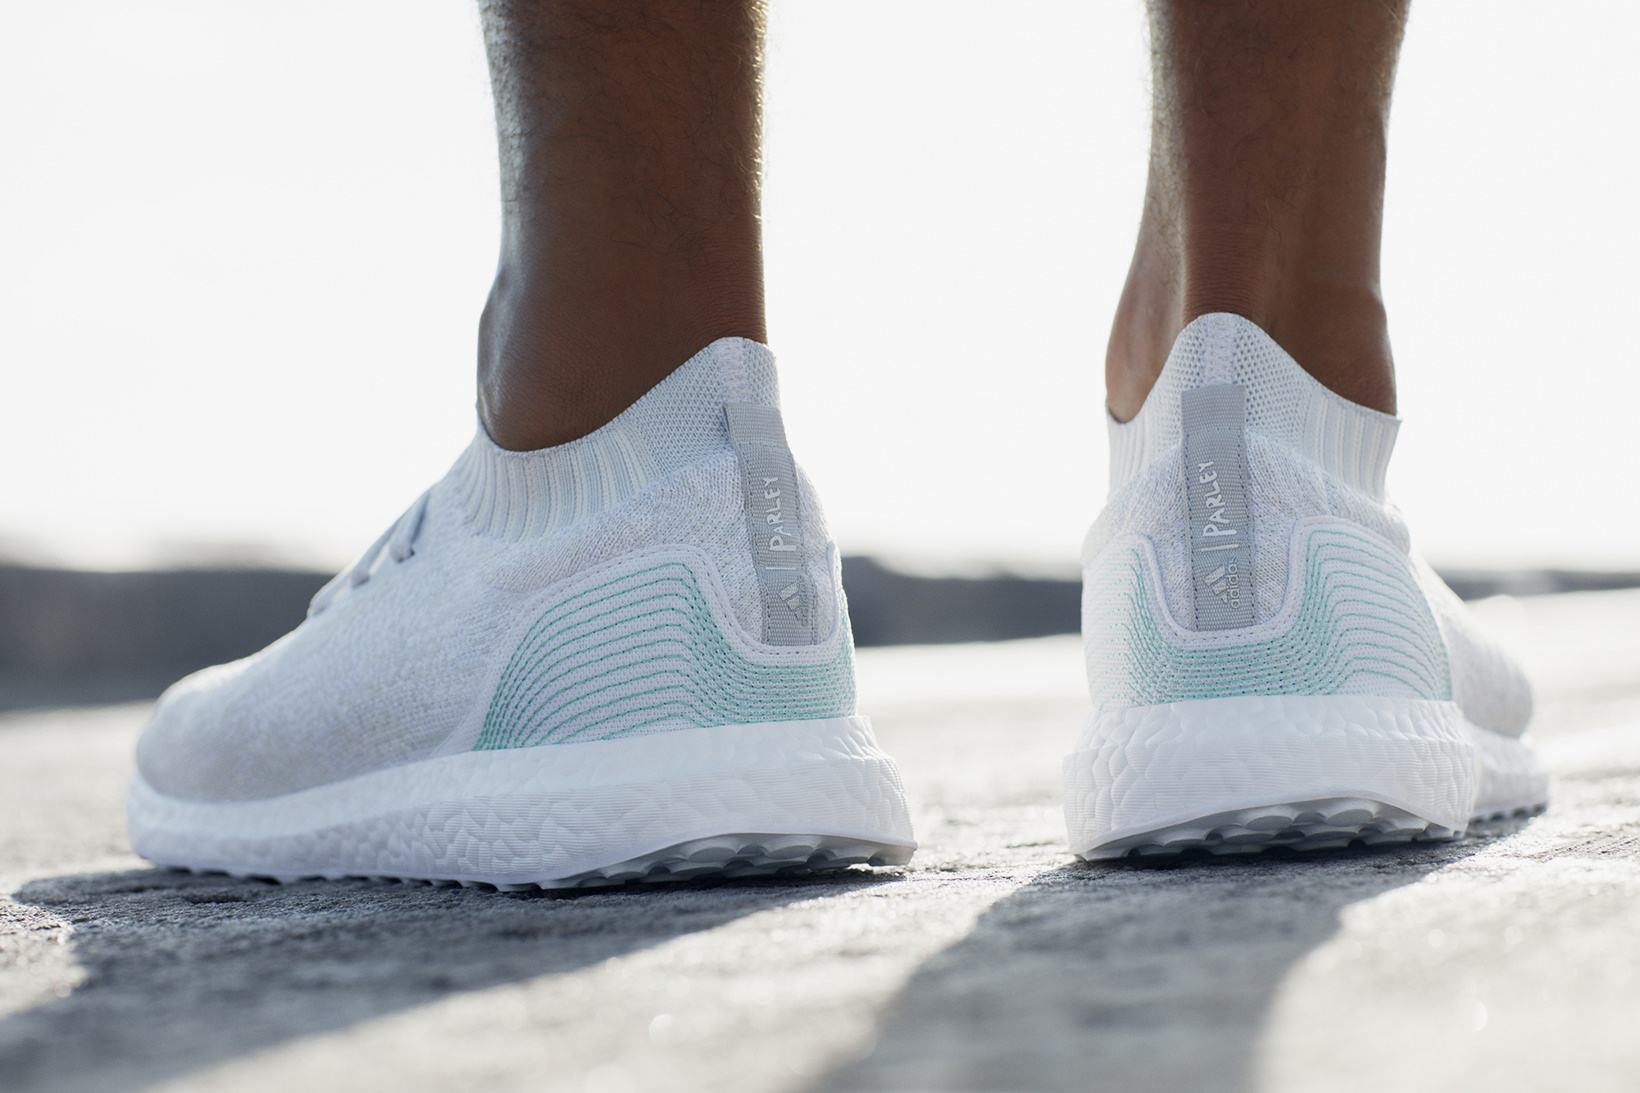 ultraboost-uncaged-parley-sneakers-1